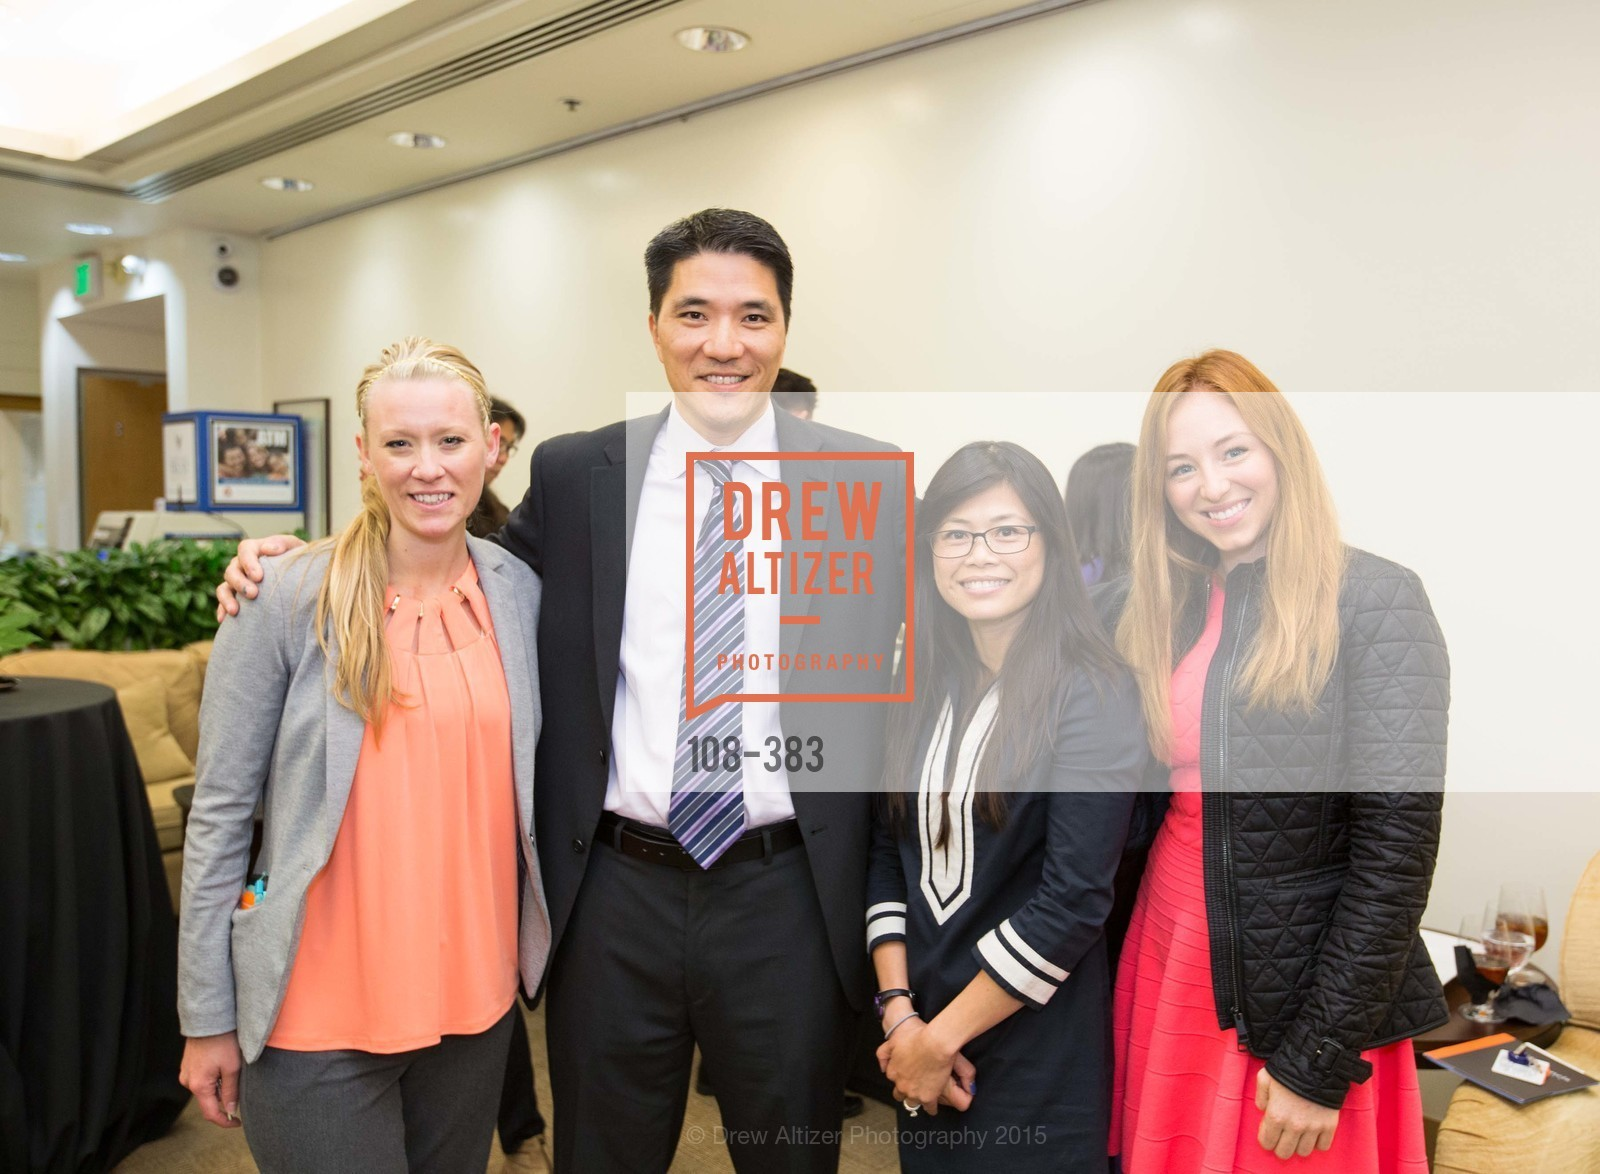 Tara Piazza, Jae Chun, Mandy Mori, Ann Marie Stauffer, Groundbreaking ceremony for the Phoebe Cowles Center for Comprehensive Pain Treatment, Phoebe Cowles Center for Comprehensive Pain Treatment. 1199 Bush Street, October 15th, 2015,Drew Altizer, Drew Altizer Photography, full-service agency, private events, San Francisco photographer, photographer california